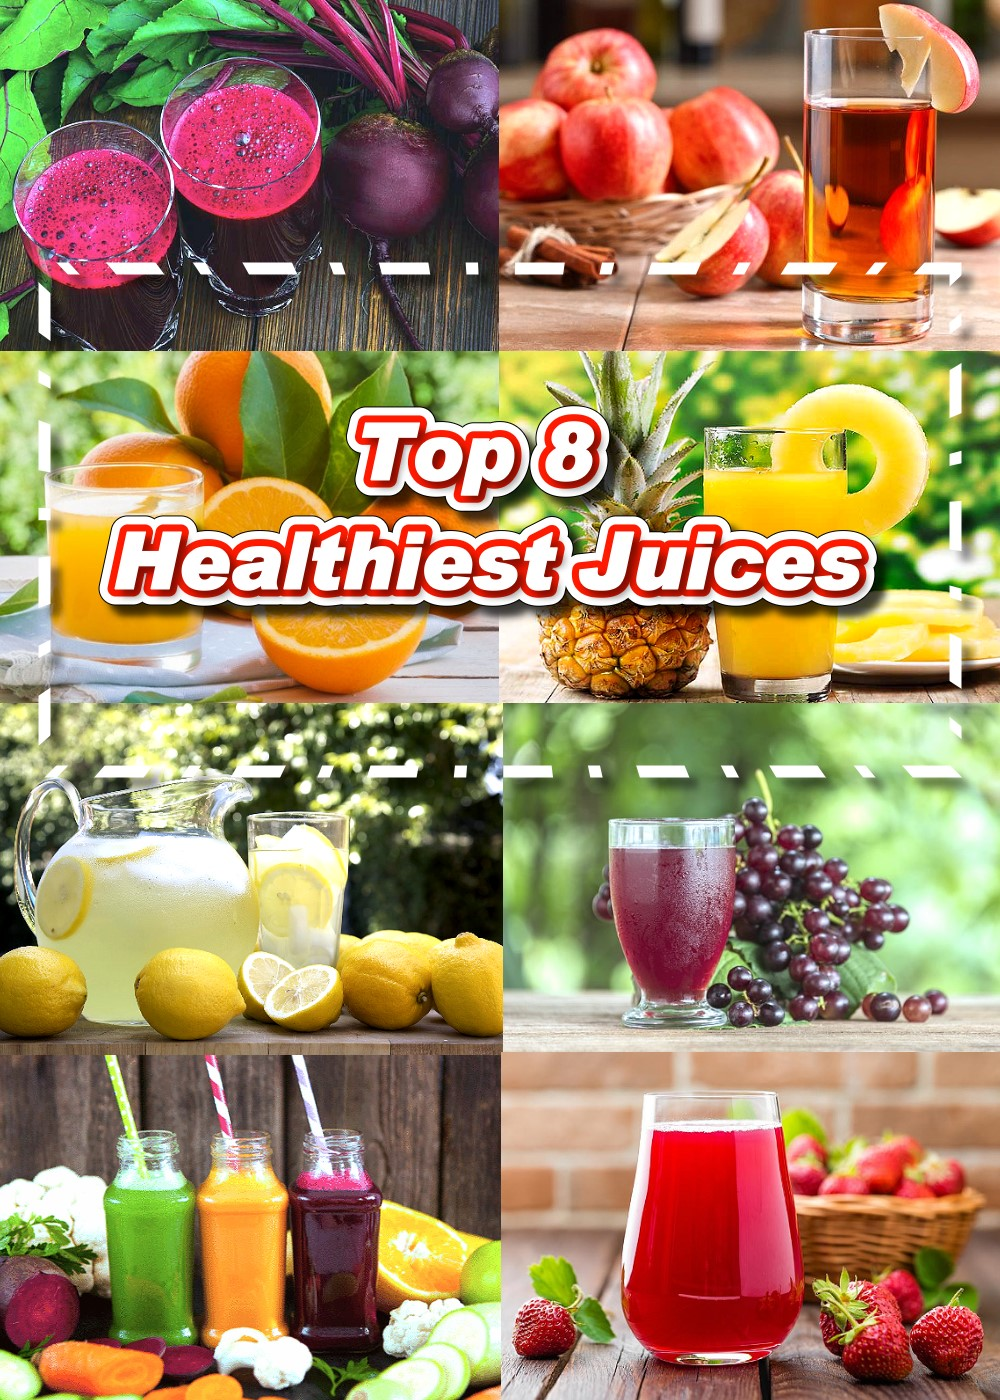 Top 8 Healthiest Juices you must drink daily